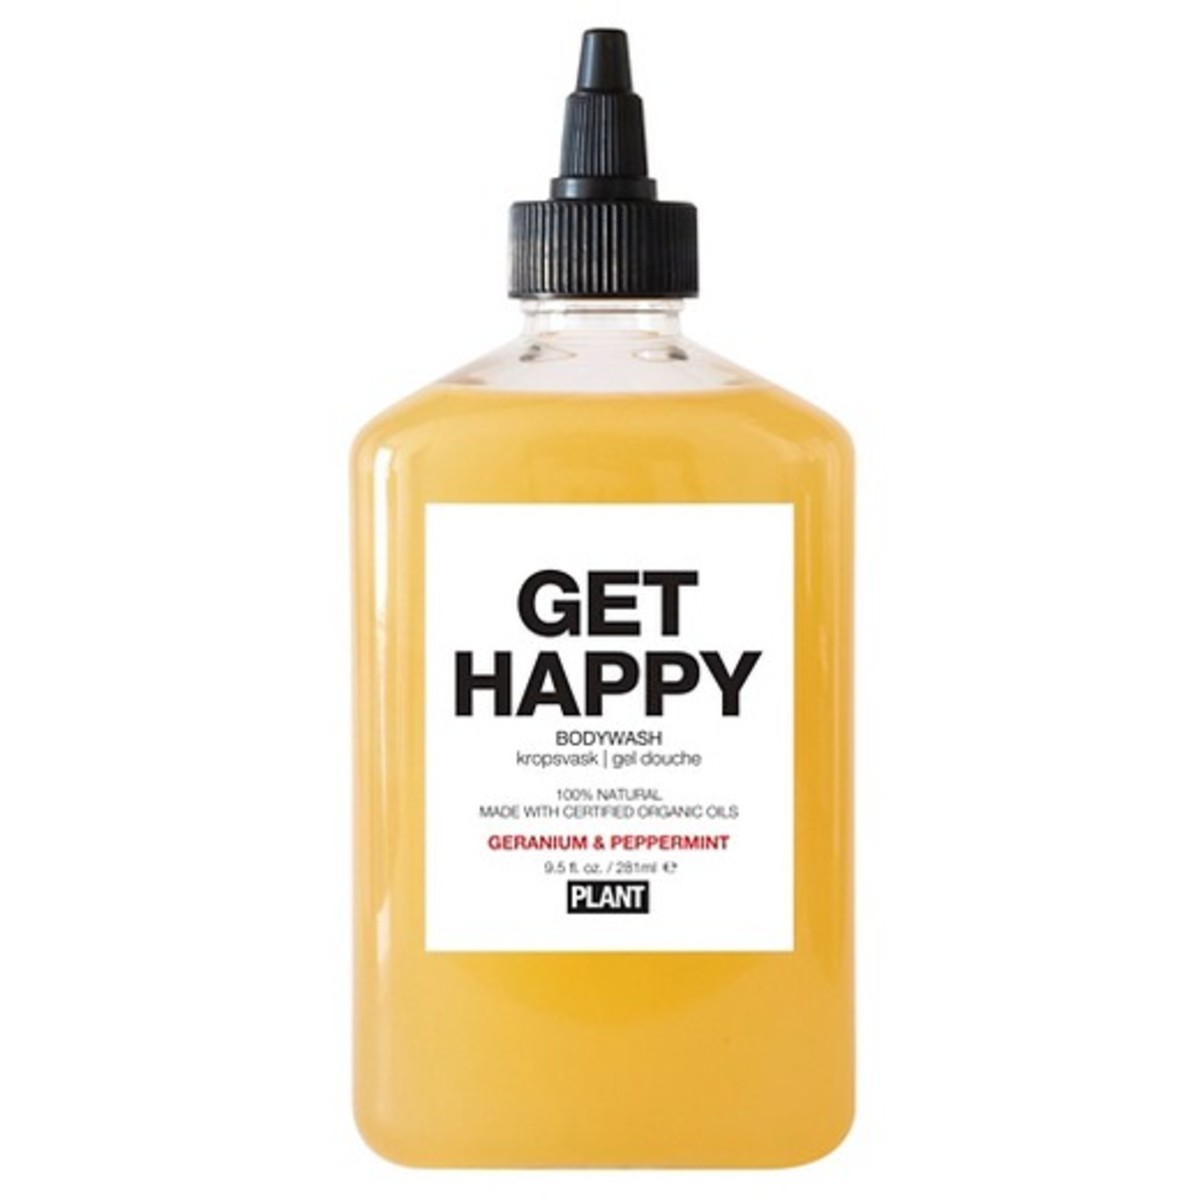 Plant Apothecary GET HAPPY Body Wash